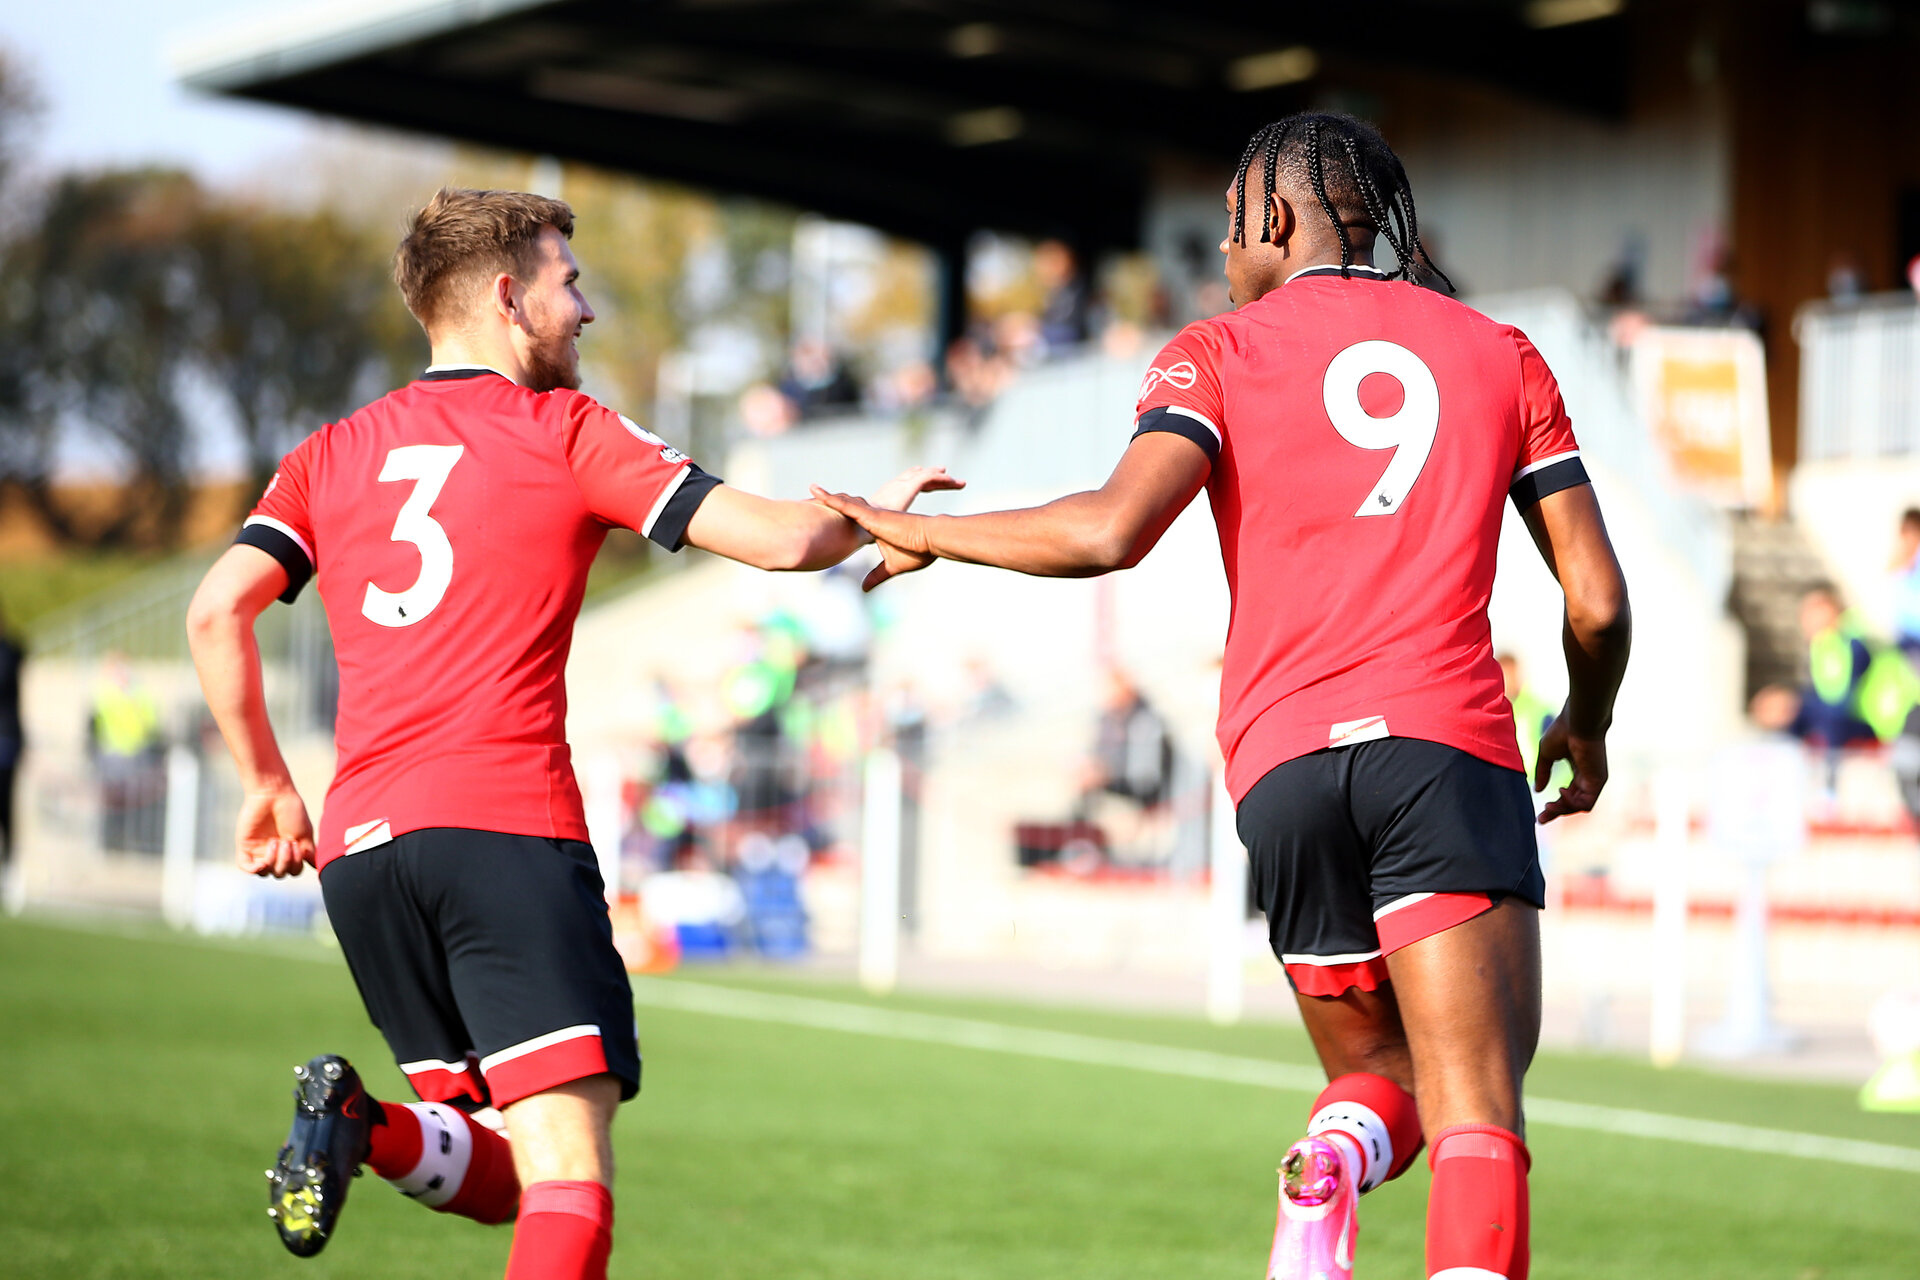 SOUTHAMPTON, ENGLAND - NOVEMBER 07: Dan N'Lundulu(R) of Southampton celebrates his first goal with Jake Vokins(L) of Southampton during the Premier League 2 match between Southampton FC B Team and Manchester City at Staplewood Training Ground on November 07, 2020 in Southampton, England. (Photo by Isabelle Field/Southampton FC via Getty Images) (Photo by Isabelle Field/Isabelle Field)